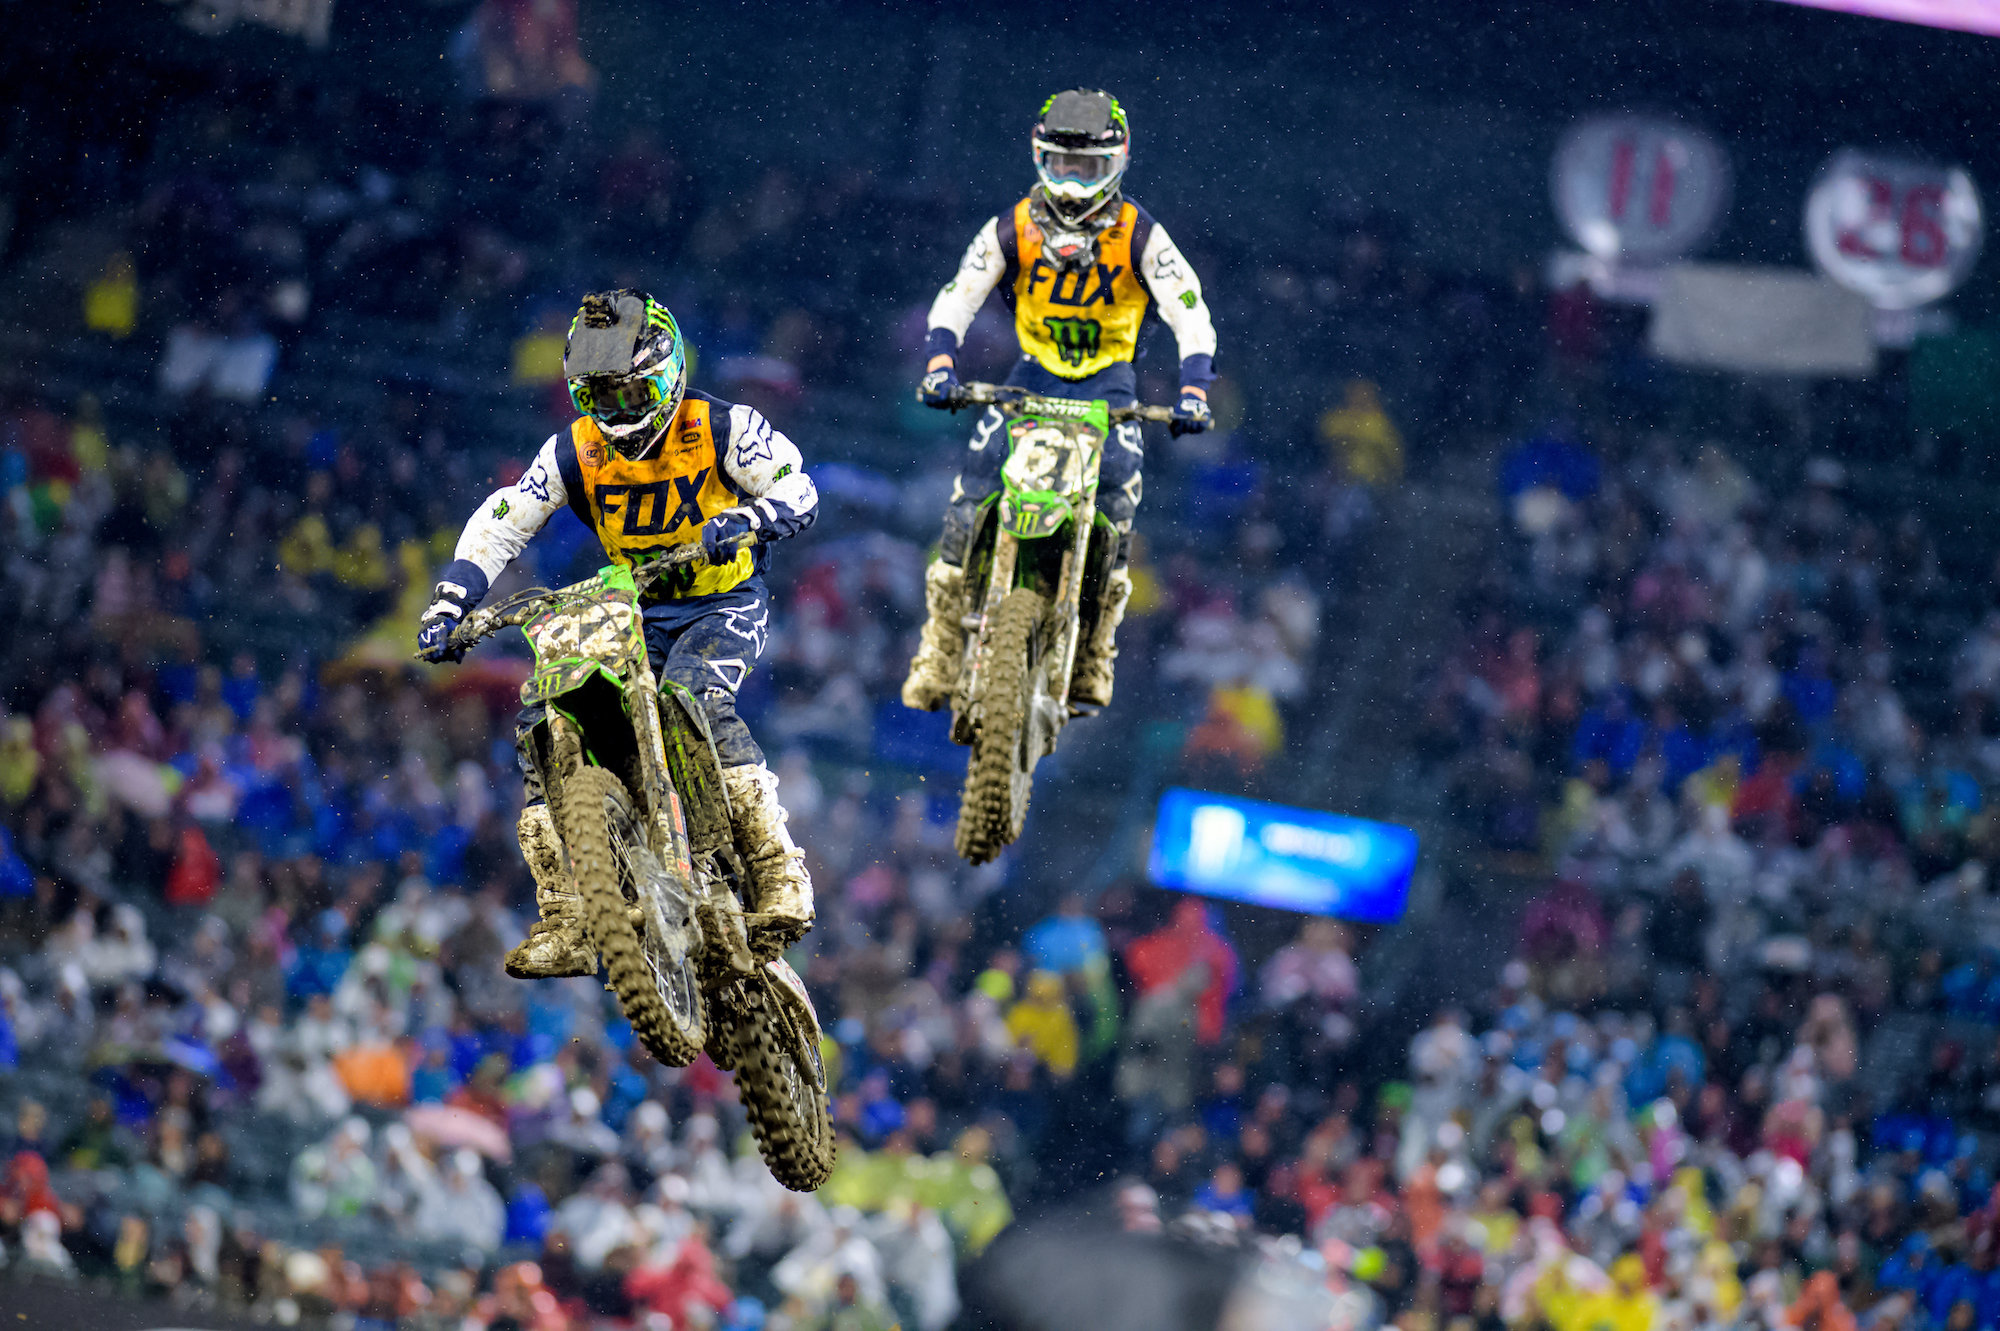 Monster Energy Pro Circuit Kawasaki's Cianciarulo and Marchbanks Ride Through Rain in Anaheim